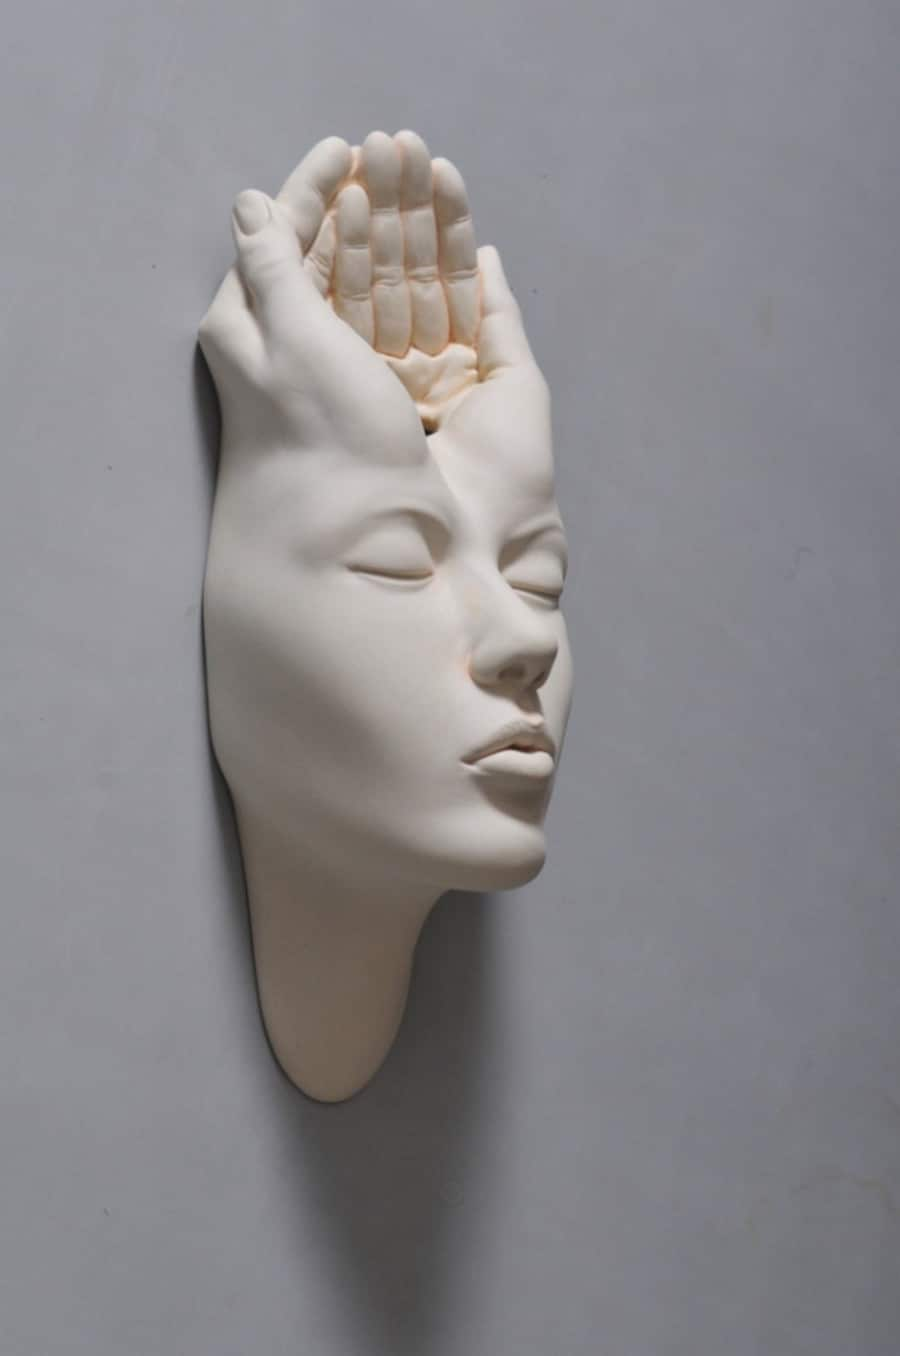 johnson tsang surreal porcelain sculpture